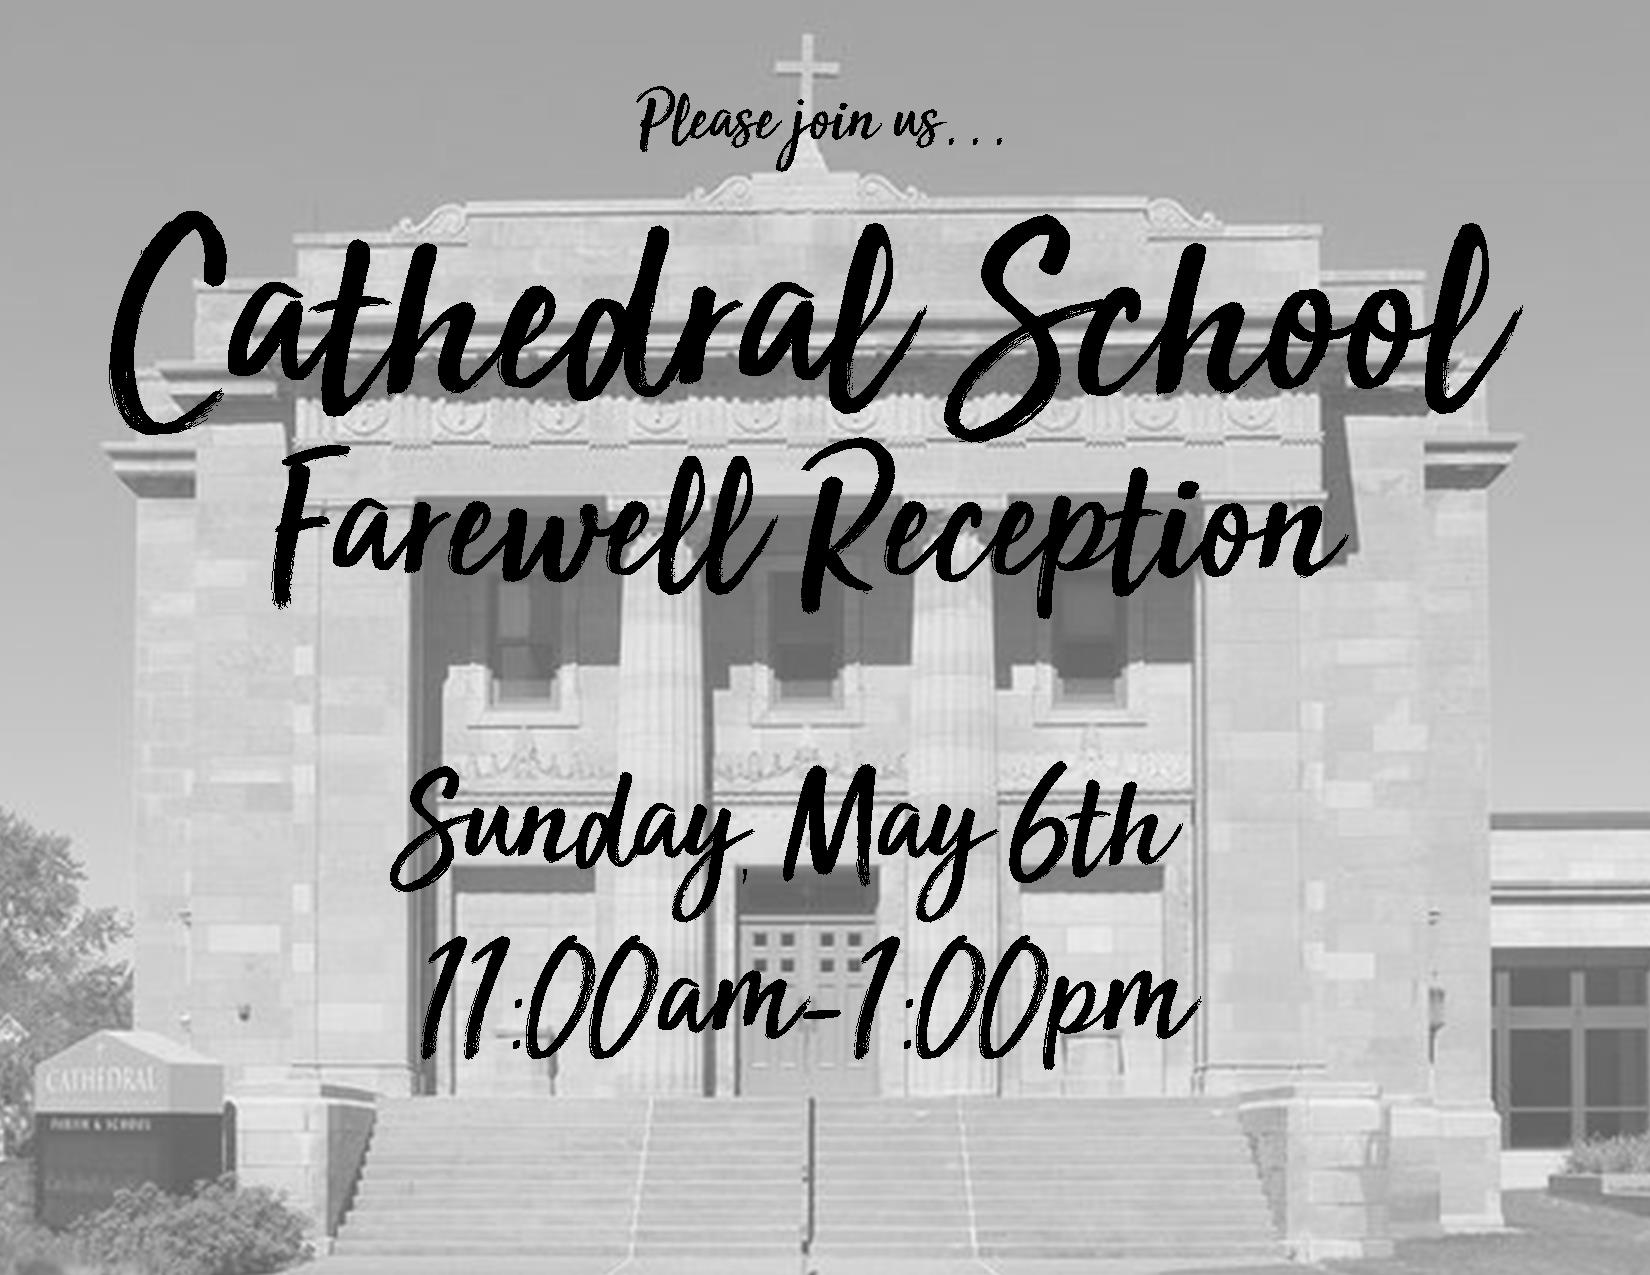 Cathedral School Farewell Reception